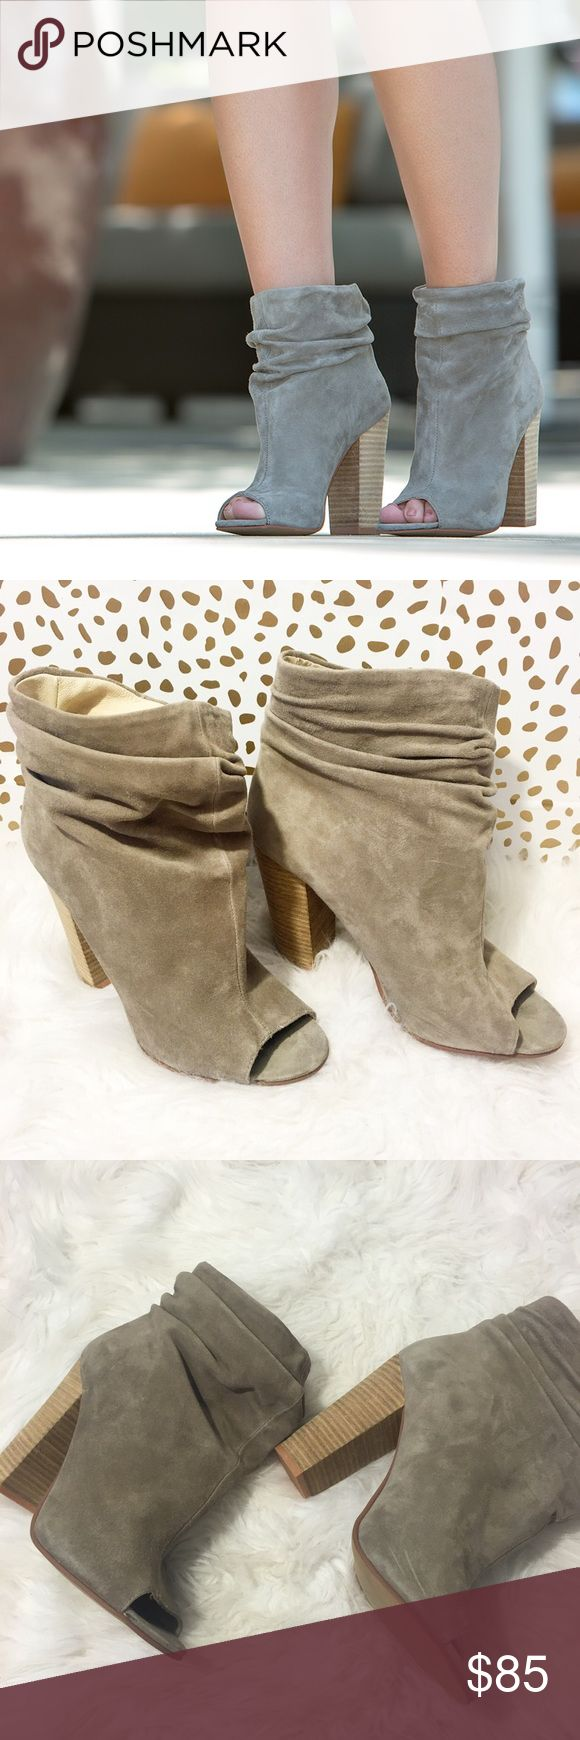 Chinese Laundry Kristin Cavallari Peep Toe Booties SO cute and perfectly on trend! Perfect for fall! Brand new and never worn. Size 9. Grey suede. Pull on. No trades!! 07131720hh Chinese Laundry Shoes Ankle Boots & Booties